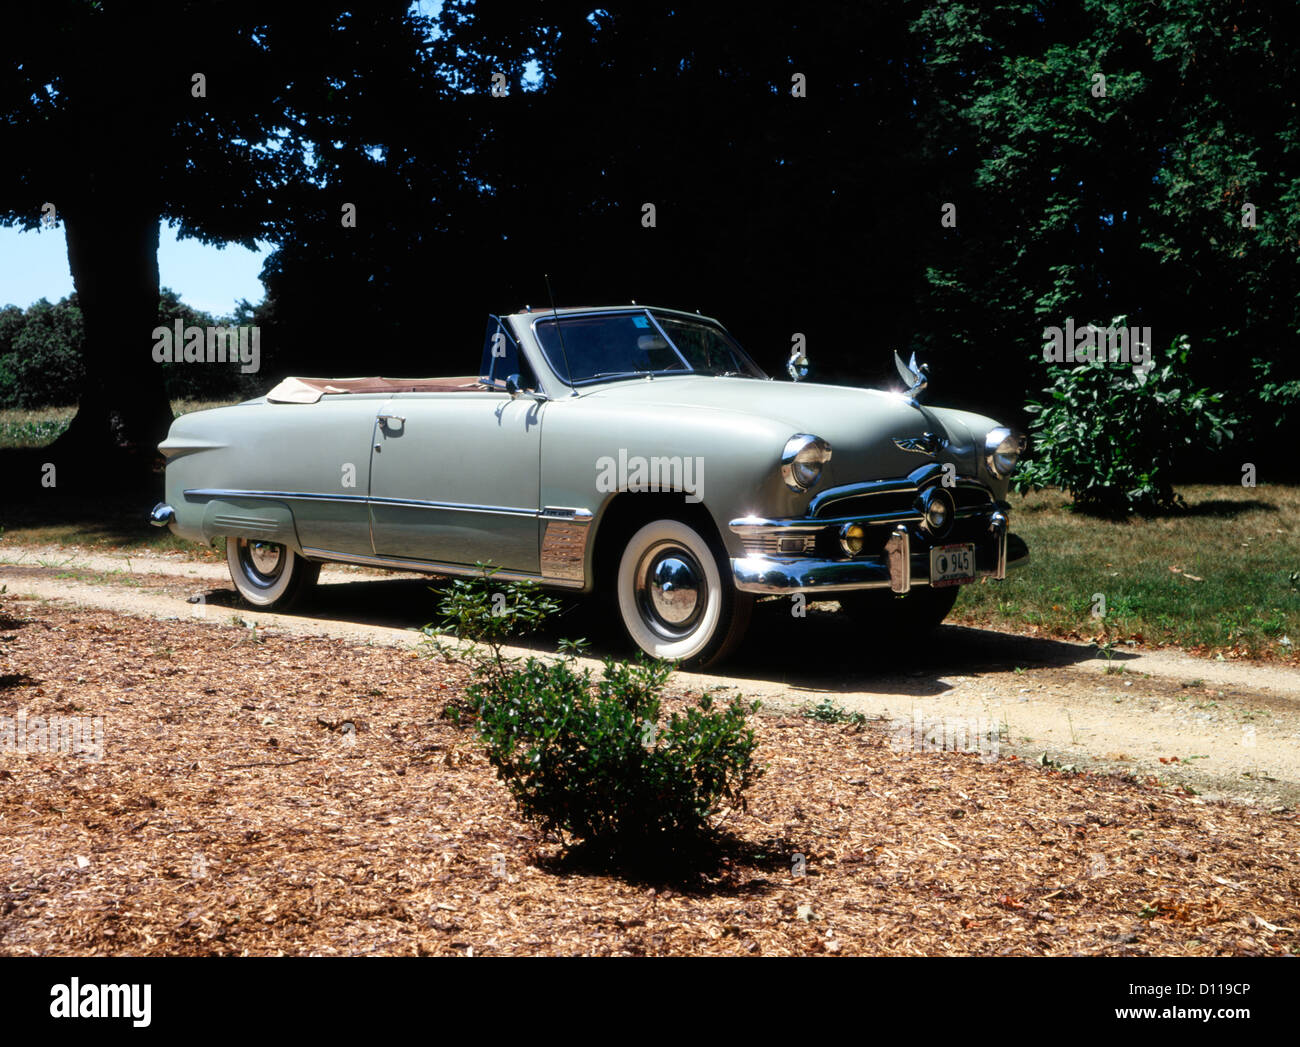 1950 Ford V8 Custom Deluxe Convertible Stock Photo Alamy